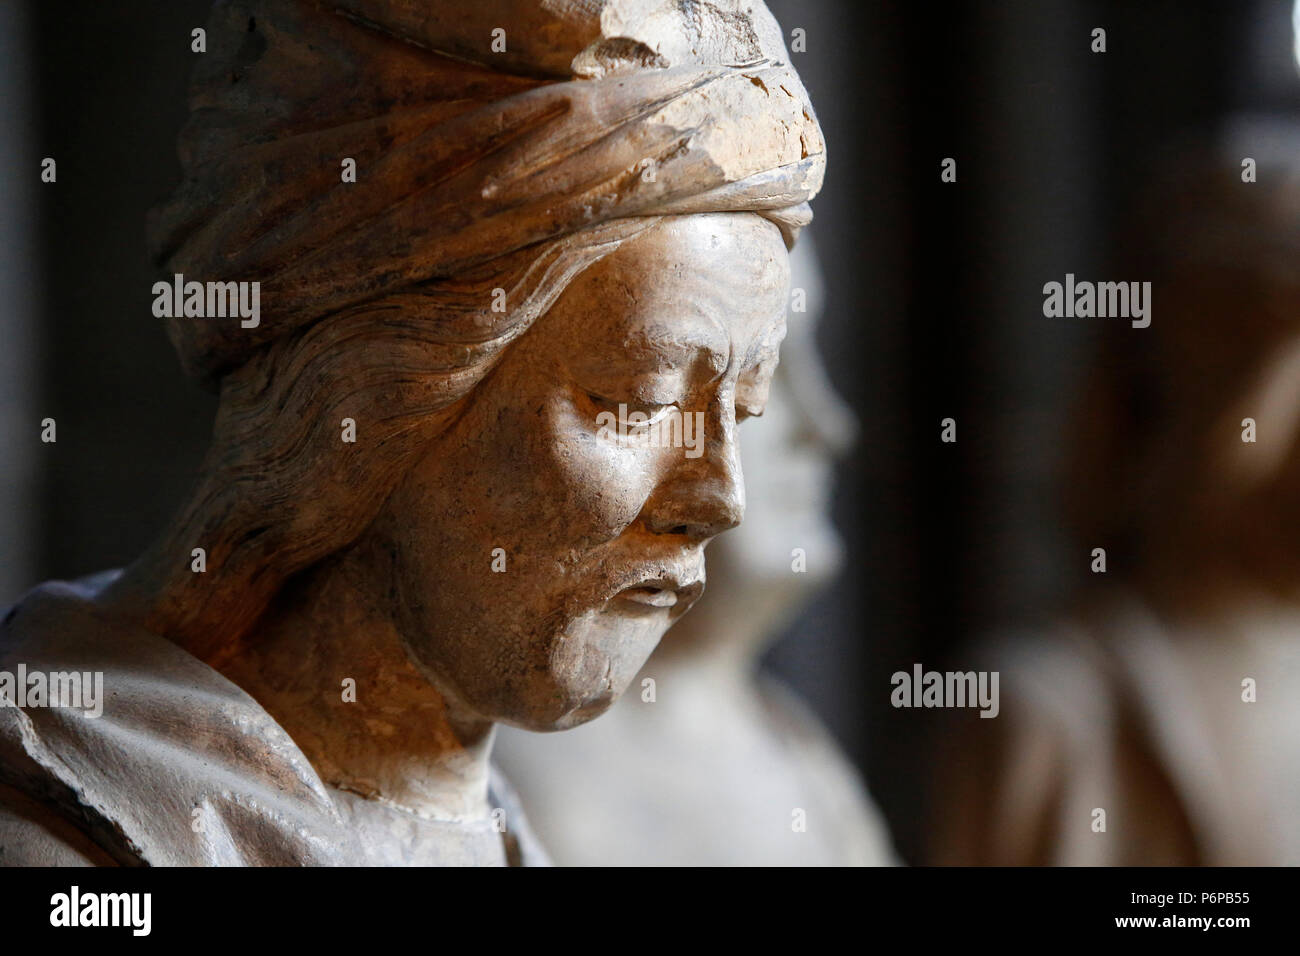 Notre Dame de Clermont cathedral, Clermont-Ferrand, France. Detail of a statue. - Stock Image